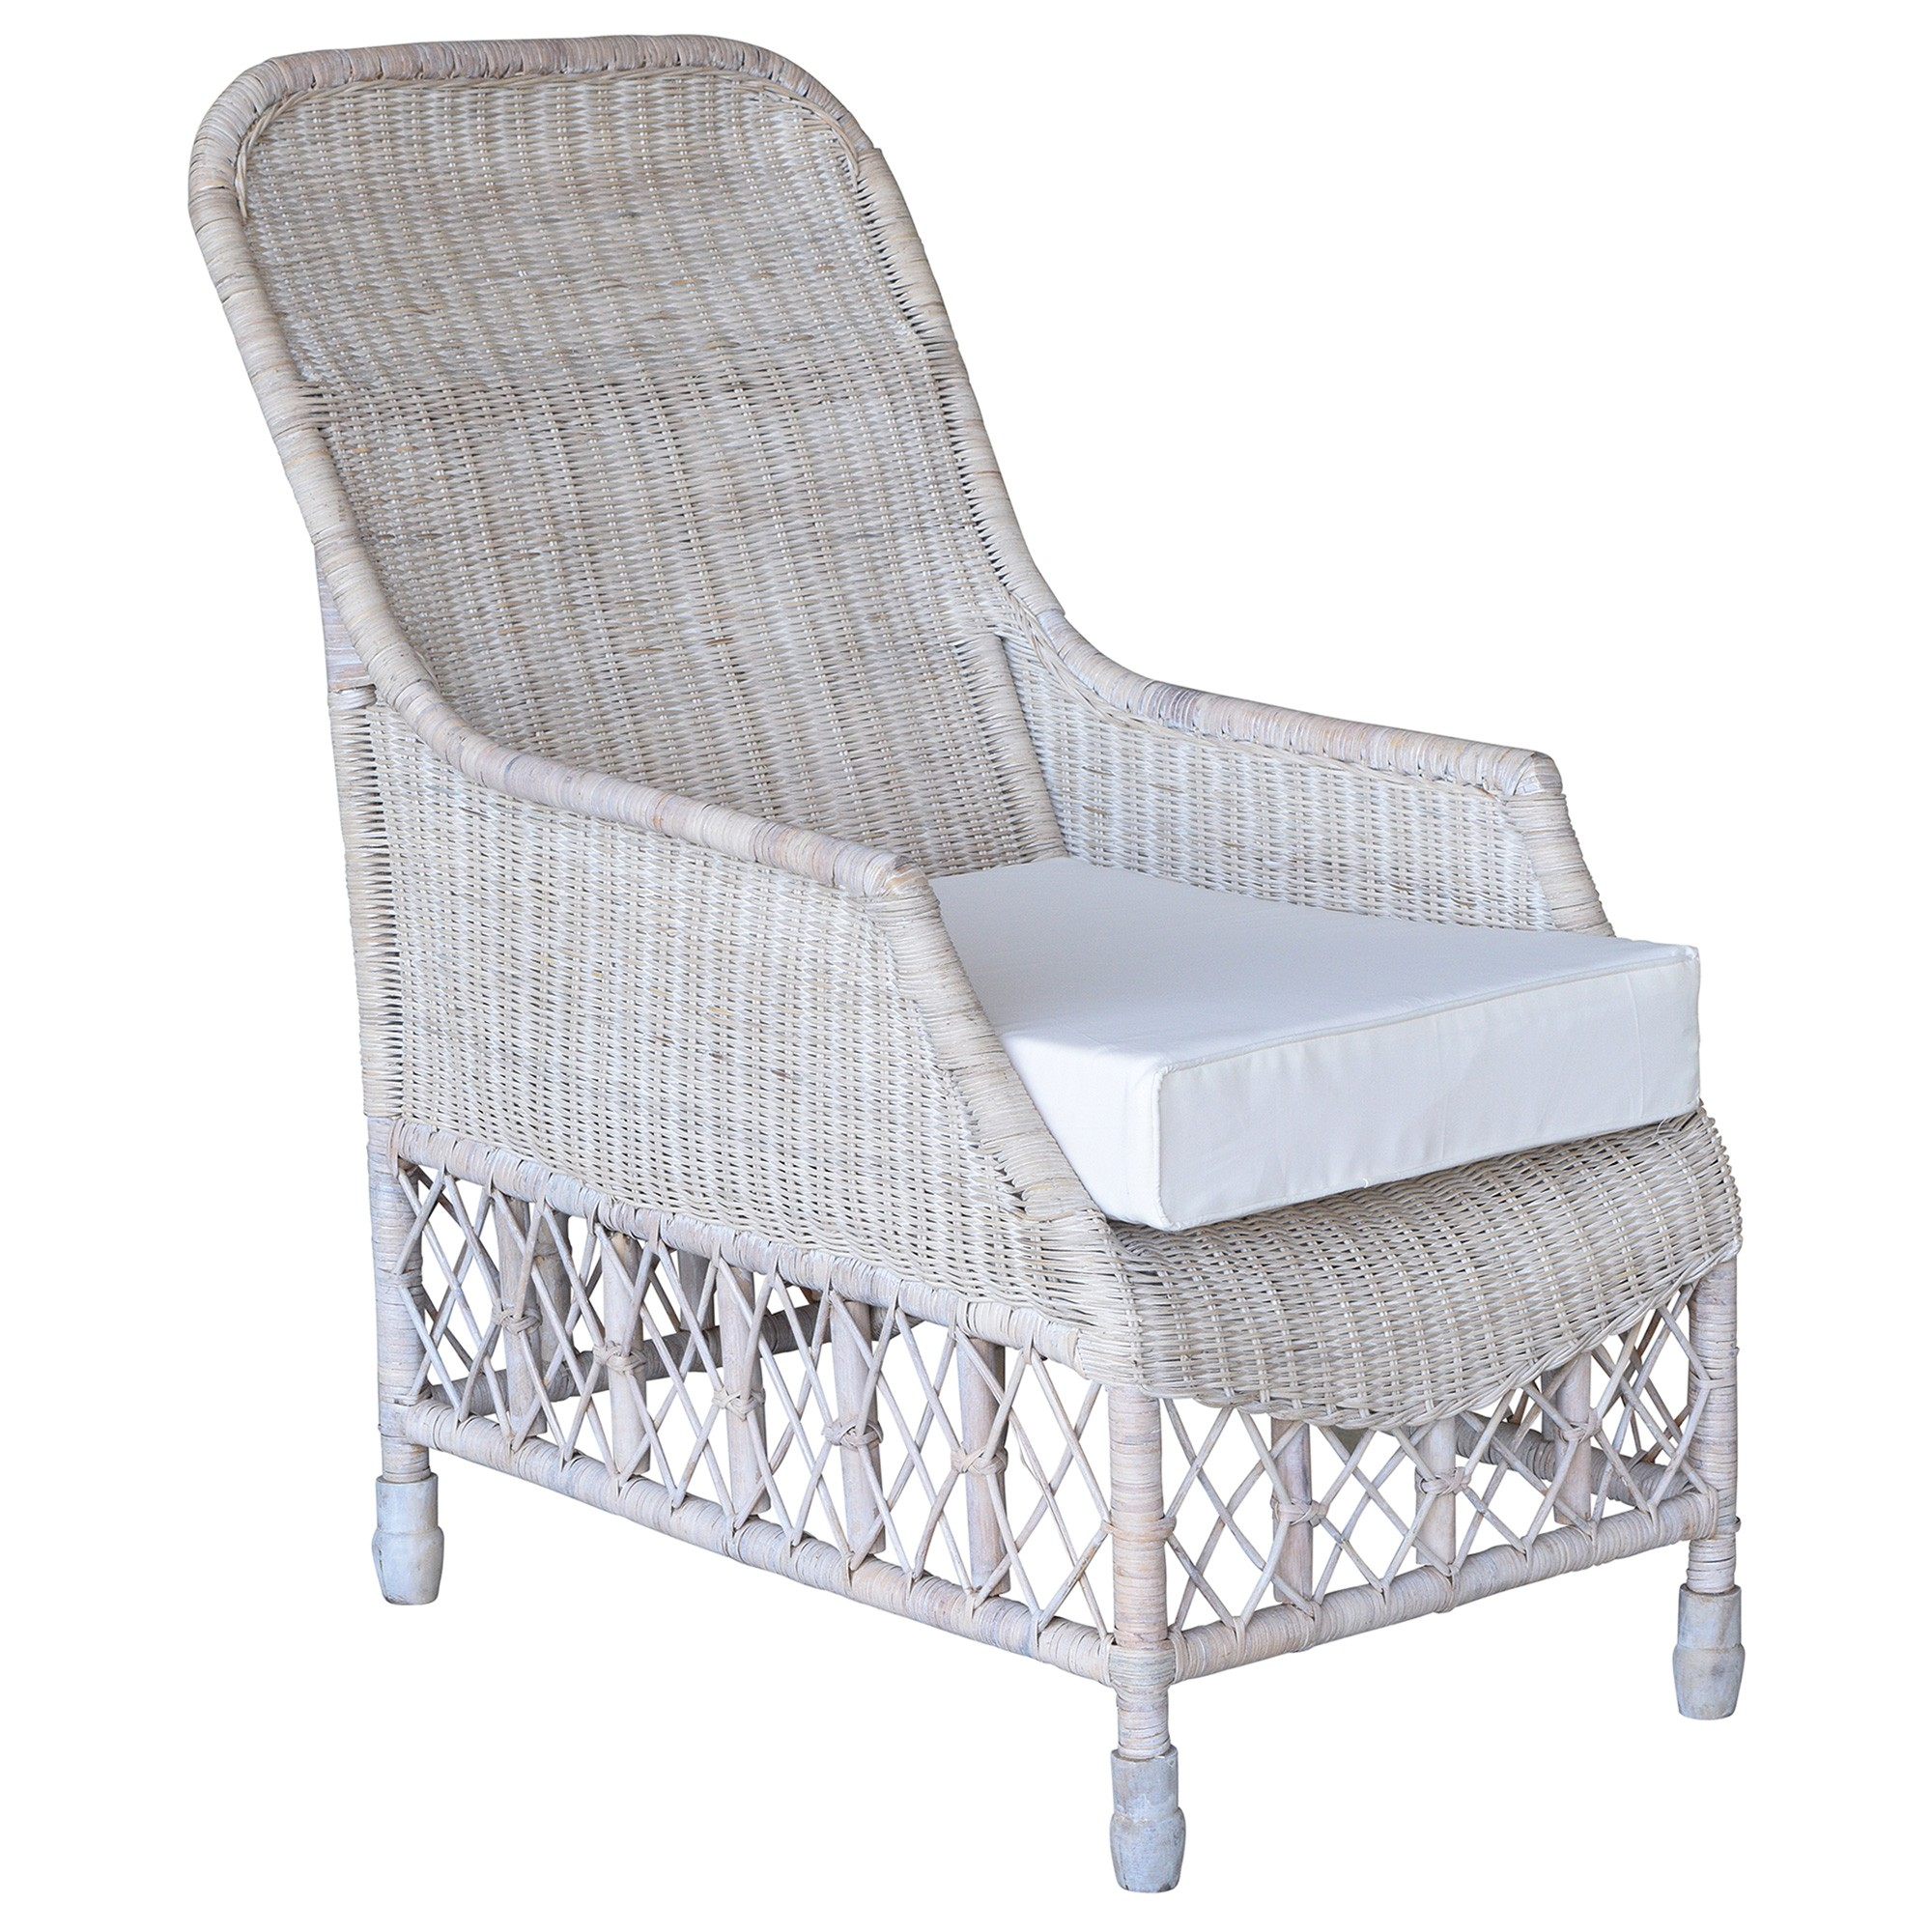 Savannah Lattice Rattan Lounge Armchair, White Wash